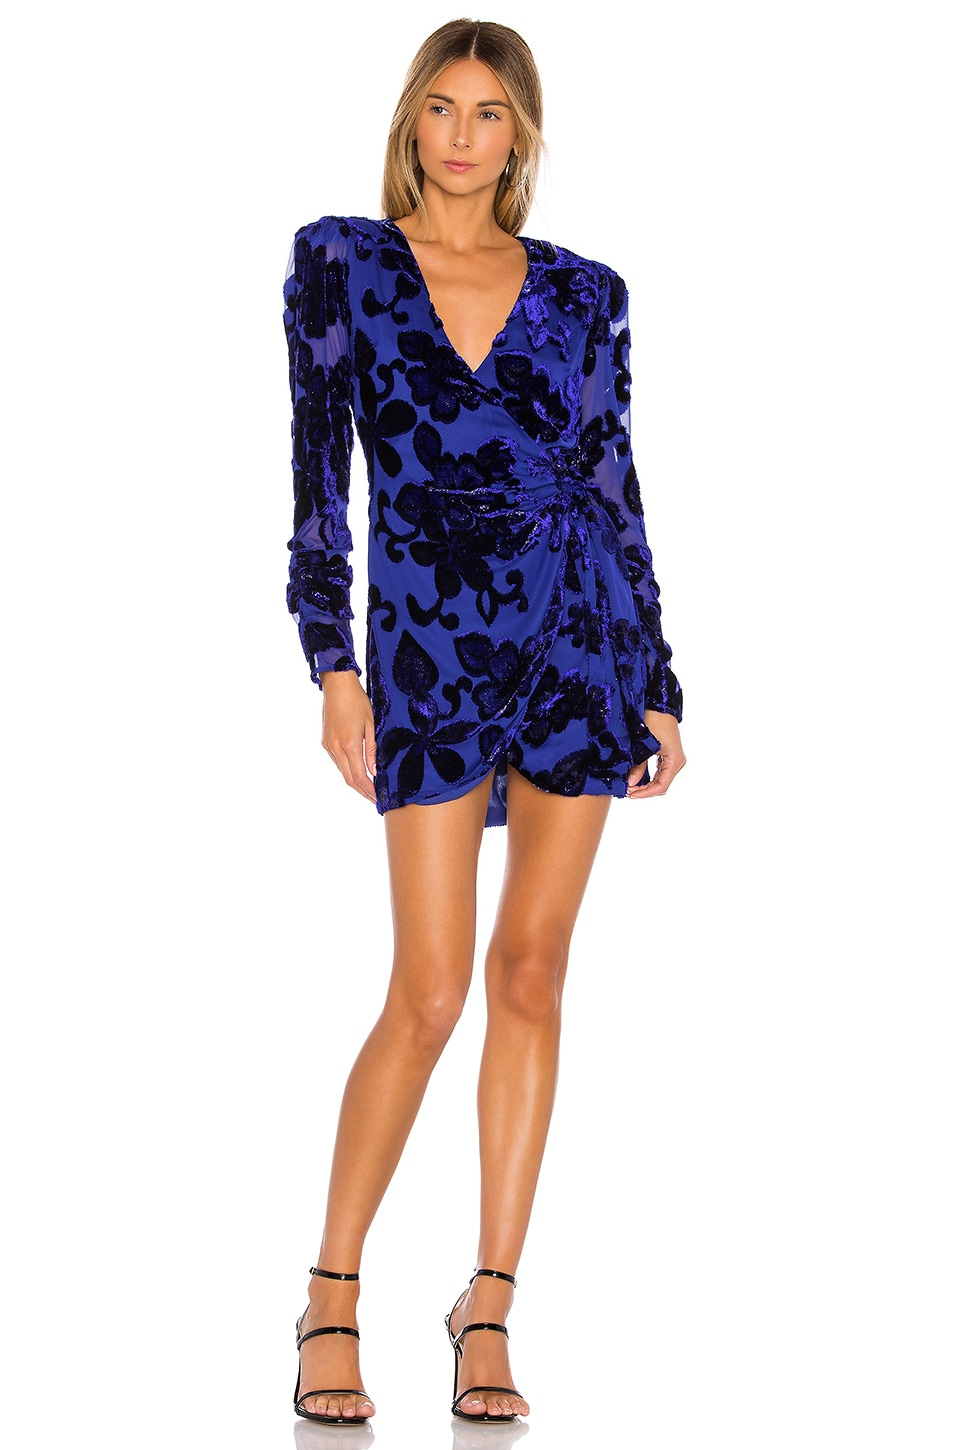 House of Harlow 1960 x REVOLVE Priscilla Dress in Sapphire Blue